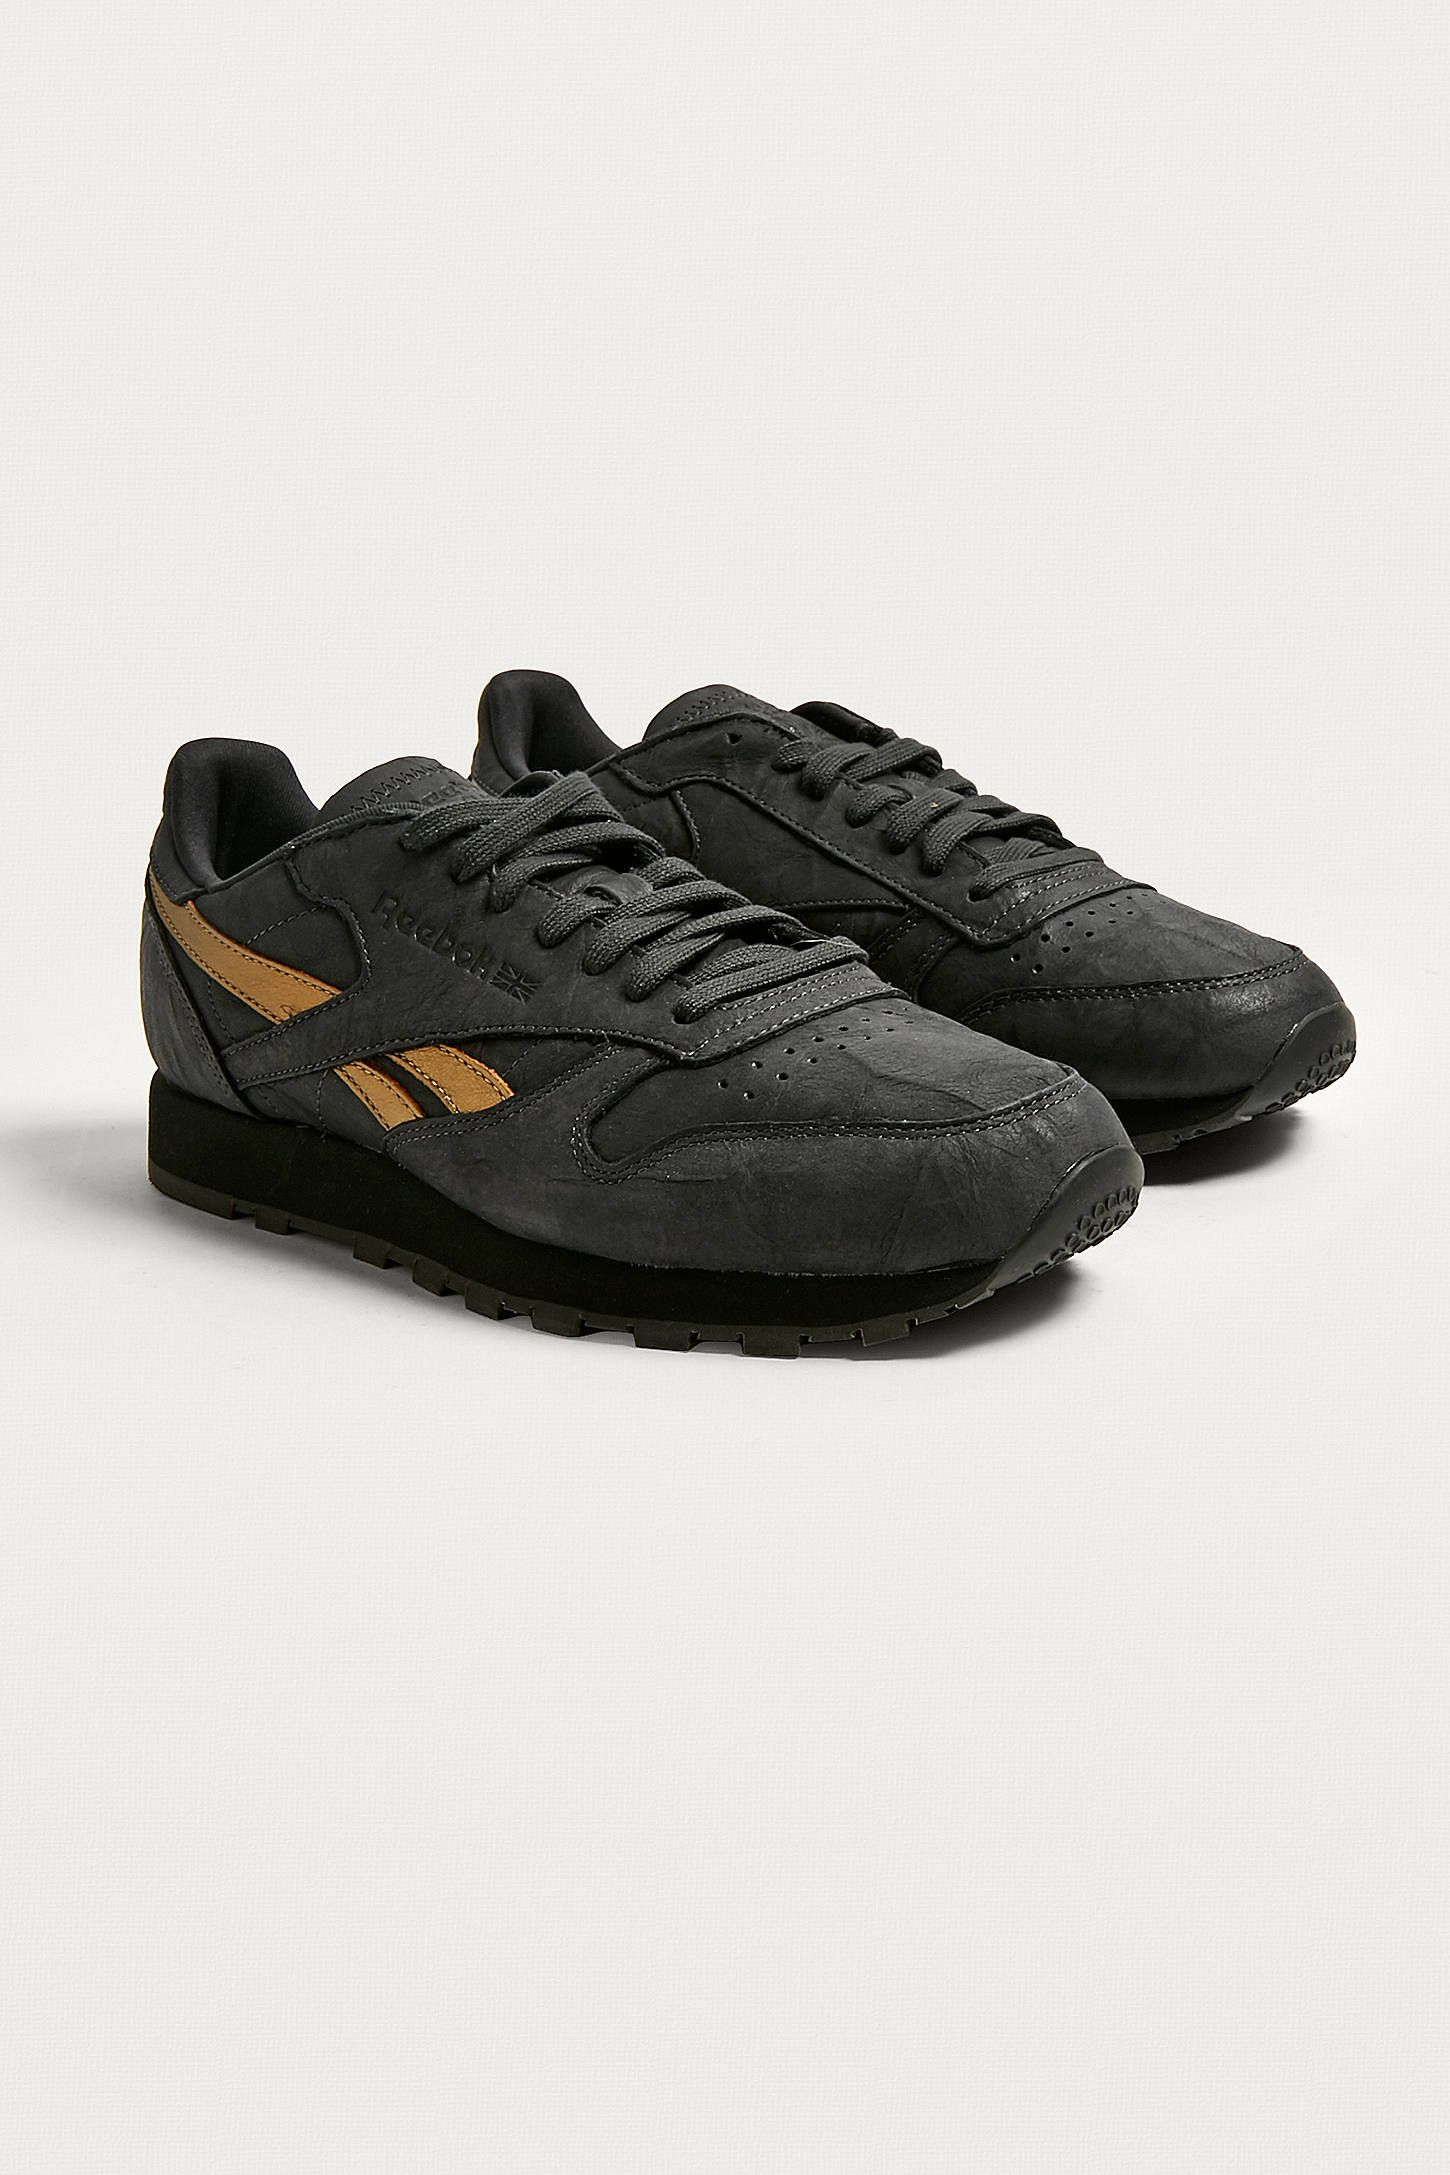 c88f4f87b32 Shop Reebok Classic Leather TU Black Trainers at Urban Outfitters today. We  carry all the latest styles